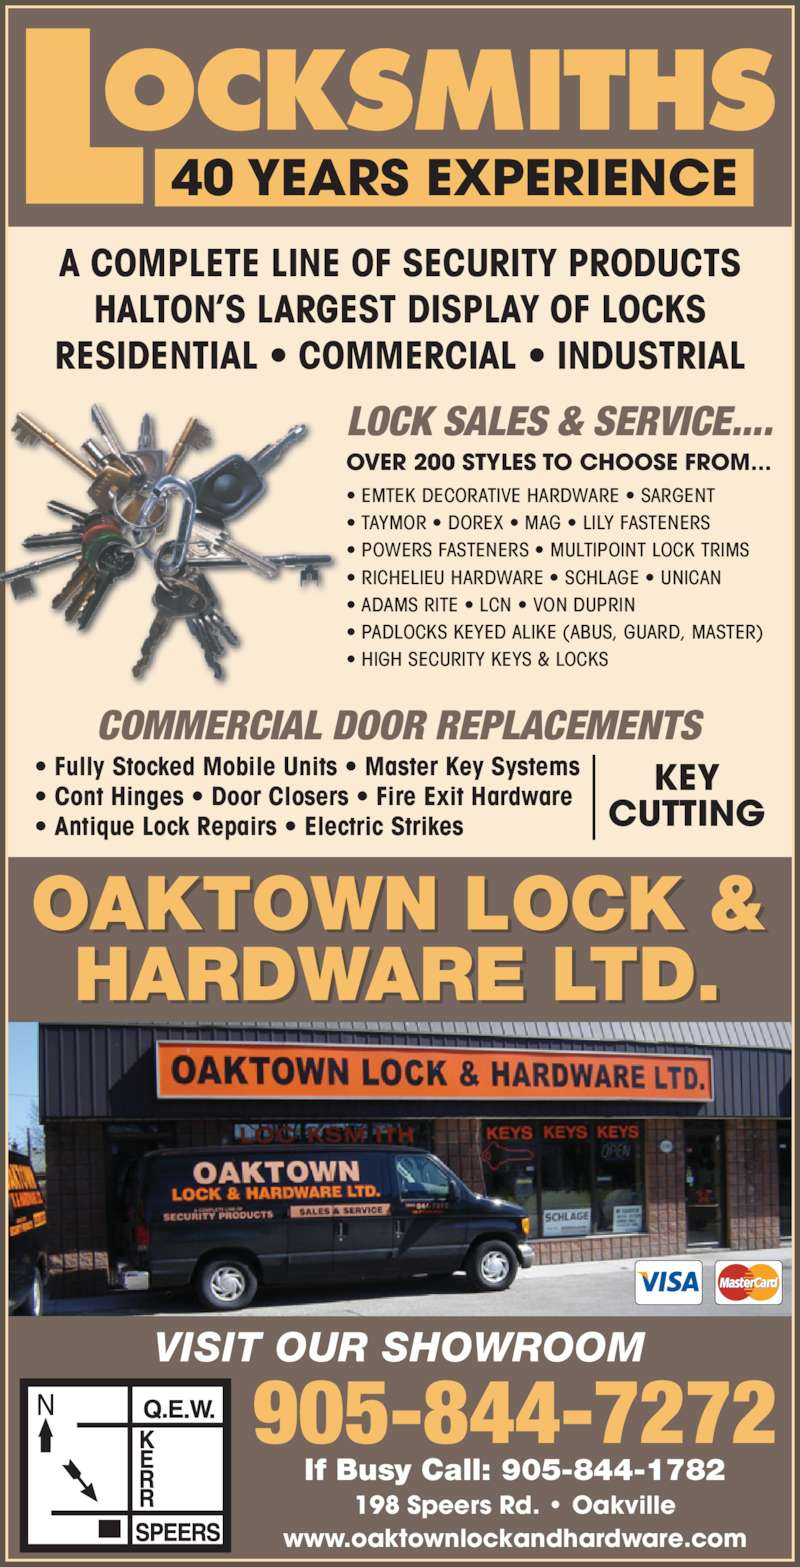 Oaktown Lock & Hardware Ltd (905-844-7272) - Display Ad - A COMPLETE LINE OF SECURITY PRODUCTS HALTON'S LARGEST DISPLAY OF LOCKS RESIDENTIAL • COMMERCIAL • INDUSTRIAL 40 YEARS EXPERIENCE VISIT OUR SHOWROOM OAKTOWN LOCK & HARDWARE LTD. 198 Speers Rd. • Oakville www.oaktownlockandhardware.com If Busy Call: 905-844-1782 905-844-7272 • EMTEK DECORATIVE HARDWARE • SARGENT  • TAYMOR • DOREX • MAG • LILY FASTENERS  • POWERS FASTENERS • MULTIPOINT LOCK TRIMS  • RICHELIEU HARDWARE • SCHLAGE • UNICAN  • ADAMS RITE • LCN • VON DUPRIN  • PADLOCKS KEYED ALIKE (ABUS, GUARD, MASTER) • HIGH SECURITY KEYS & LOCKS OVER 200 STYLES TO CHOOSE FROM... LOCK SALES & SERVICE.... COMMERCIAL DOOR REPLACEMENTS • Fully Stocked Mobile Units • Master Key Systems • Cont Hinges • Door Closers • Fire Exit Hardware • Antique Lock Repairs • Electric Strikes KEY CUTTING